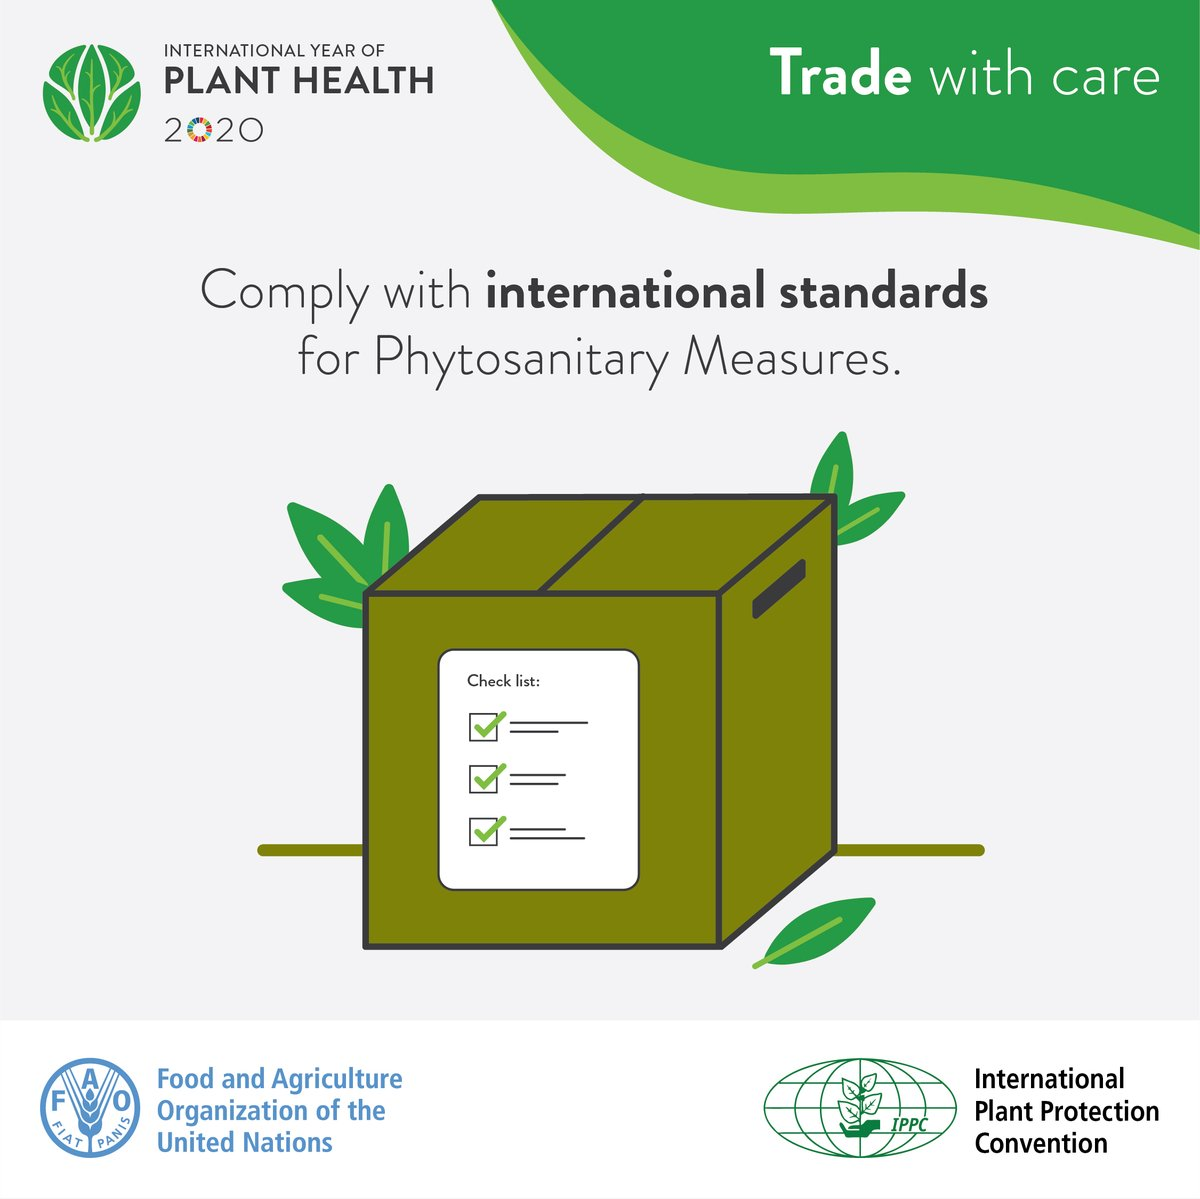 Plants make up 80% of the food we eat! Keeping our plants healthy is vital for our #foodsecurity. We need to ensure that #planthealth is ensured beyond borders.   More info 👉